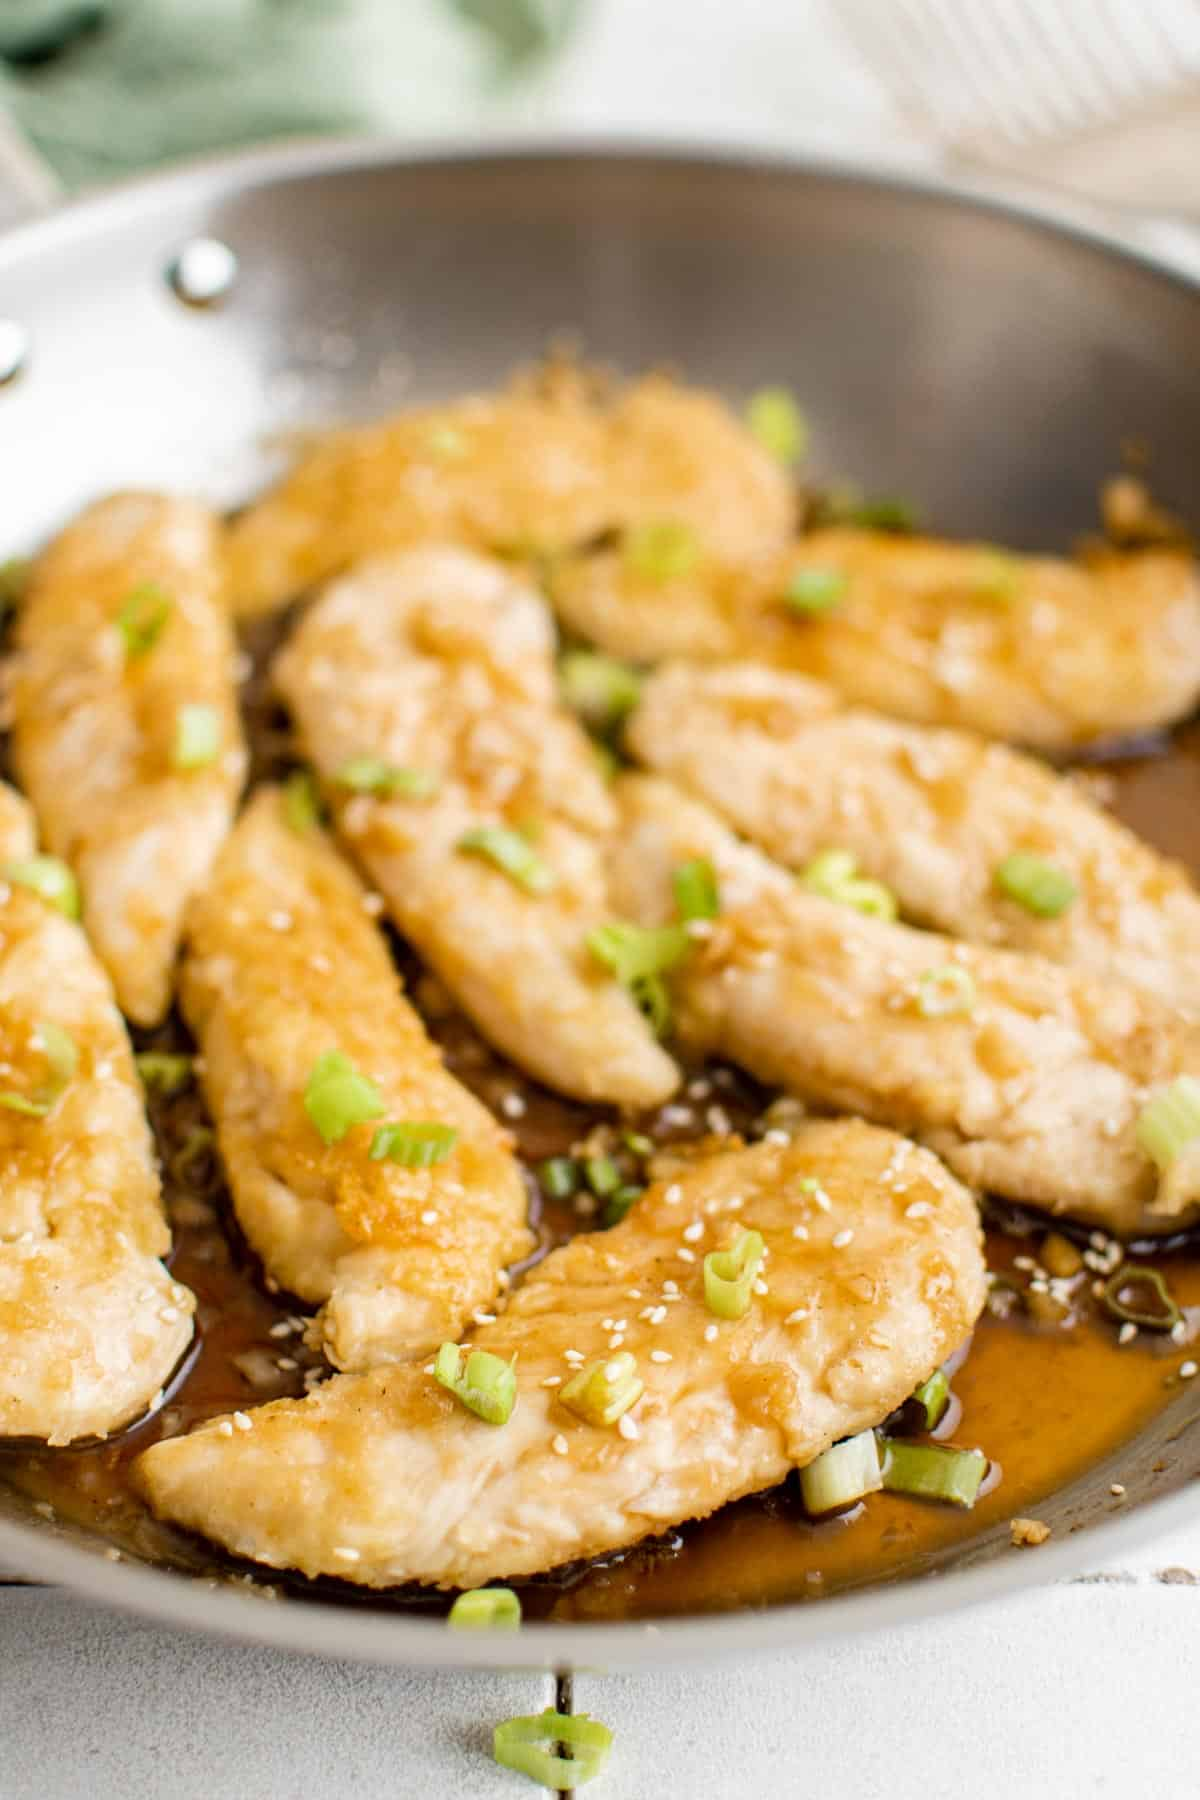 the completed chicken tender recipe with honey garlic sauce inside the pan